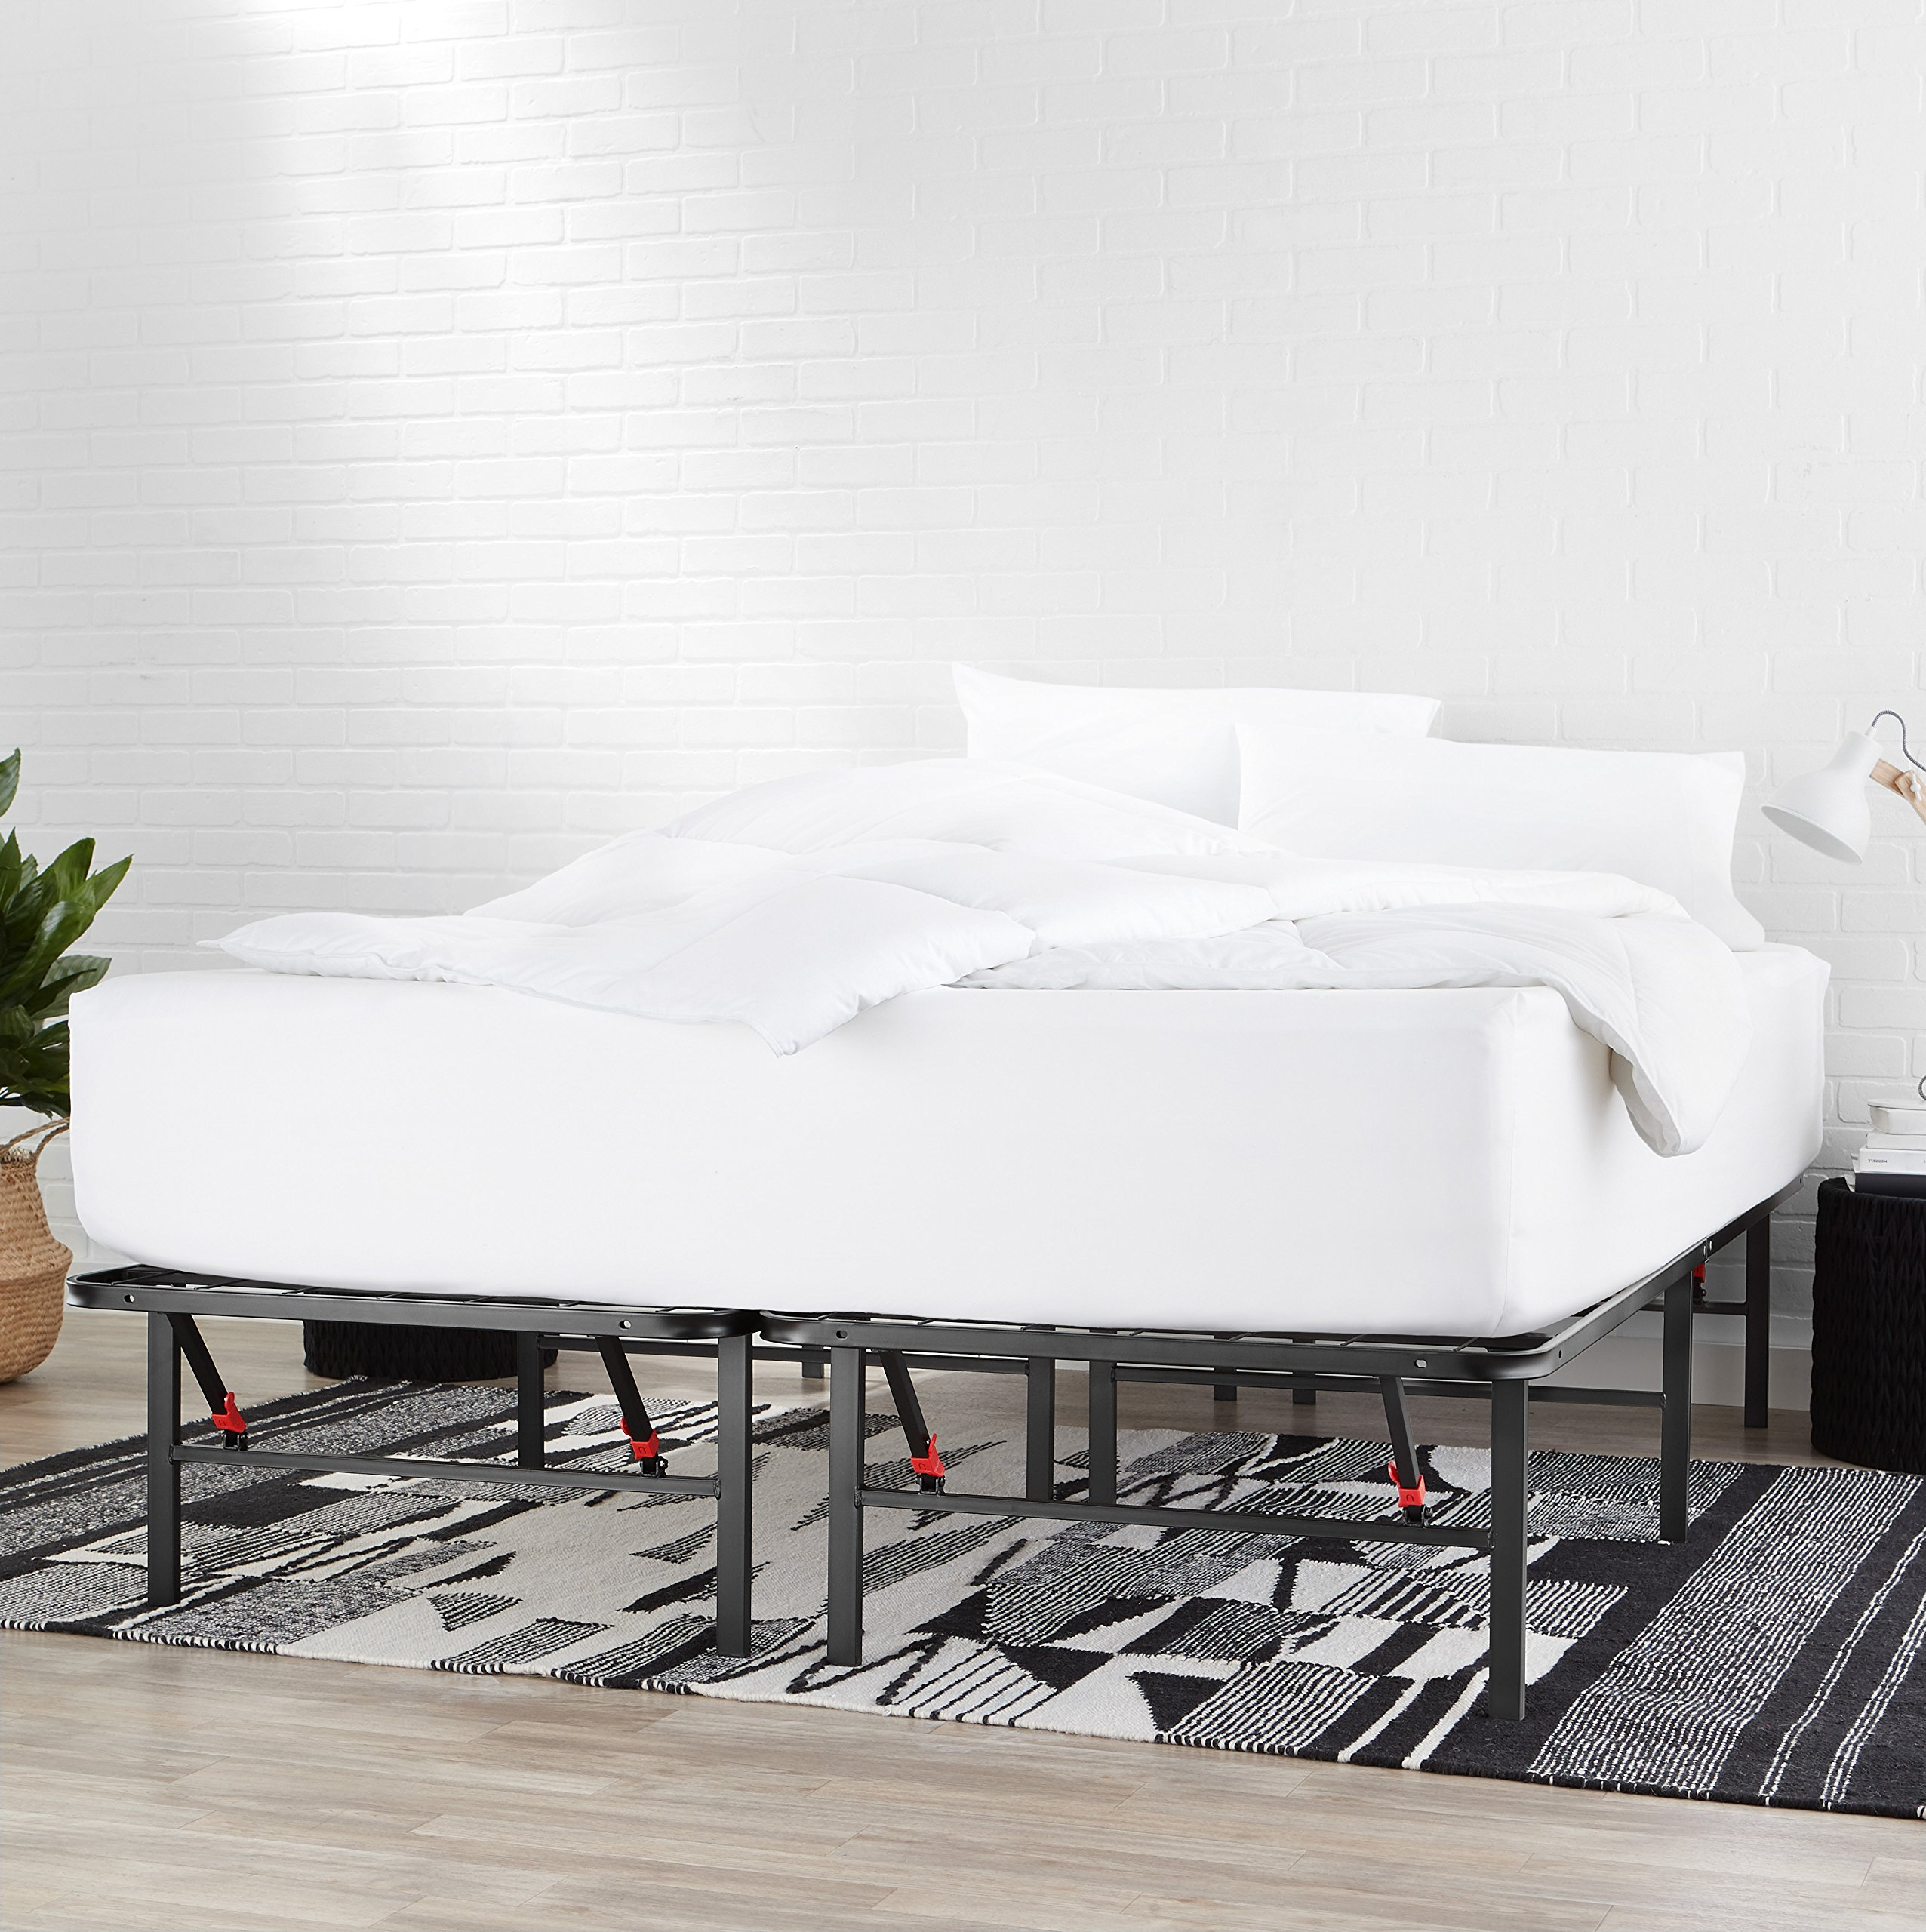 AmazonBasics Foldable Metal Platform Bed Frame for Under-Bed Storage - Tools-free Assembly, No Box Spring Needed - Queen by AmazonBasics